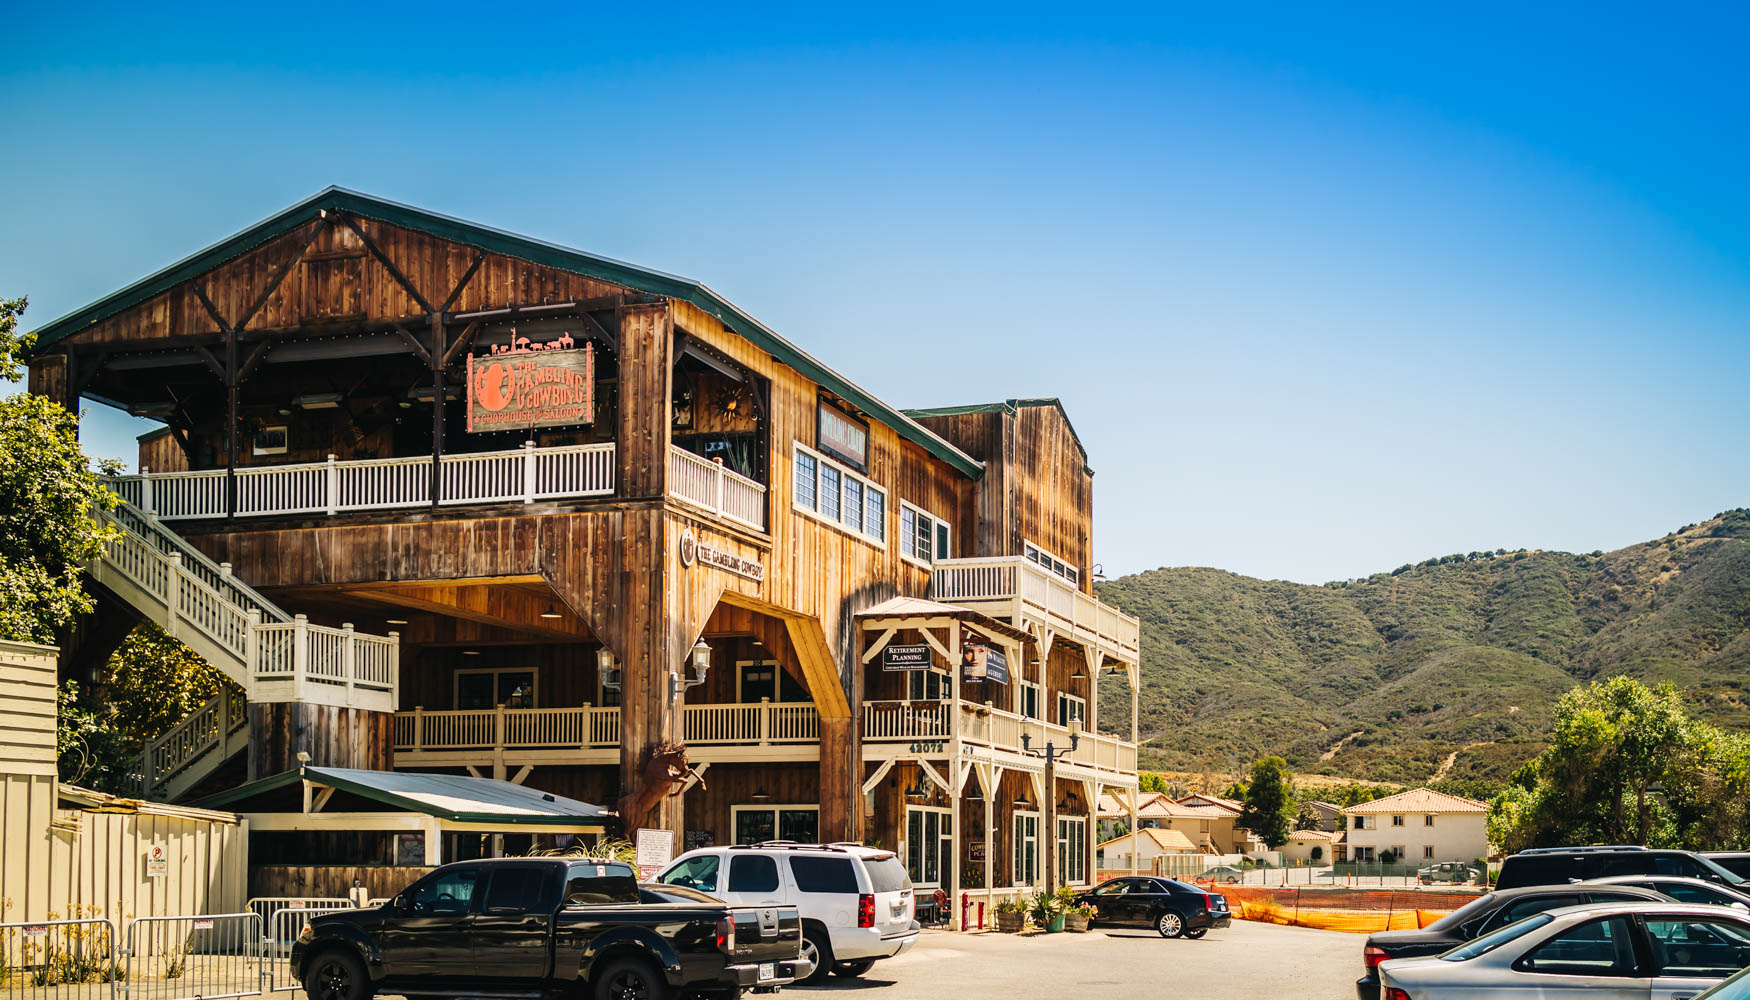 OLD TOWN TEMECULA + WWW.THETRAVELPOCKETS.COM